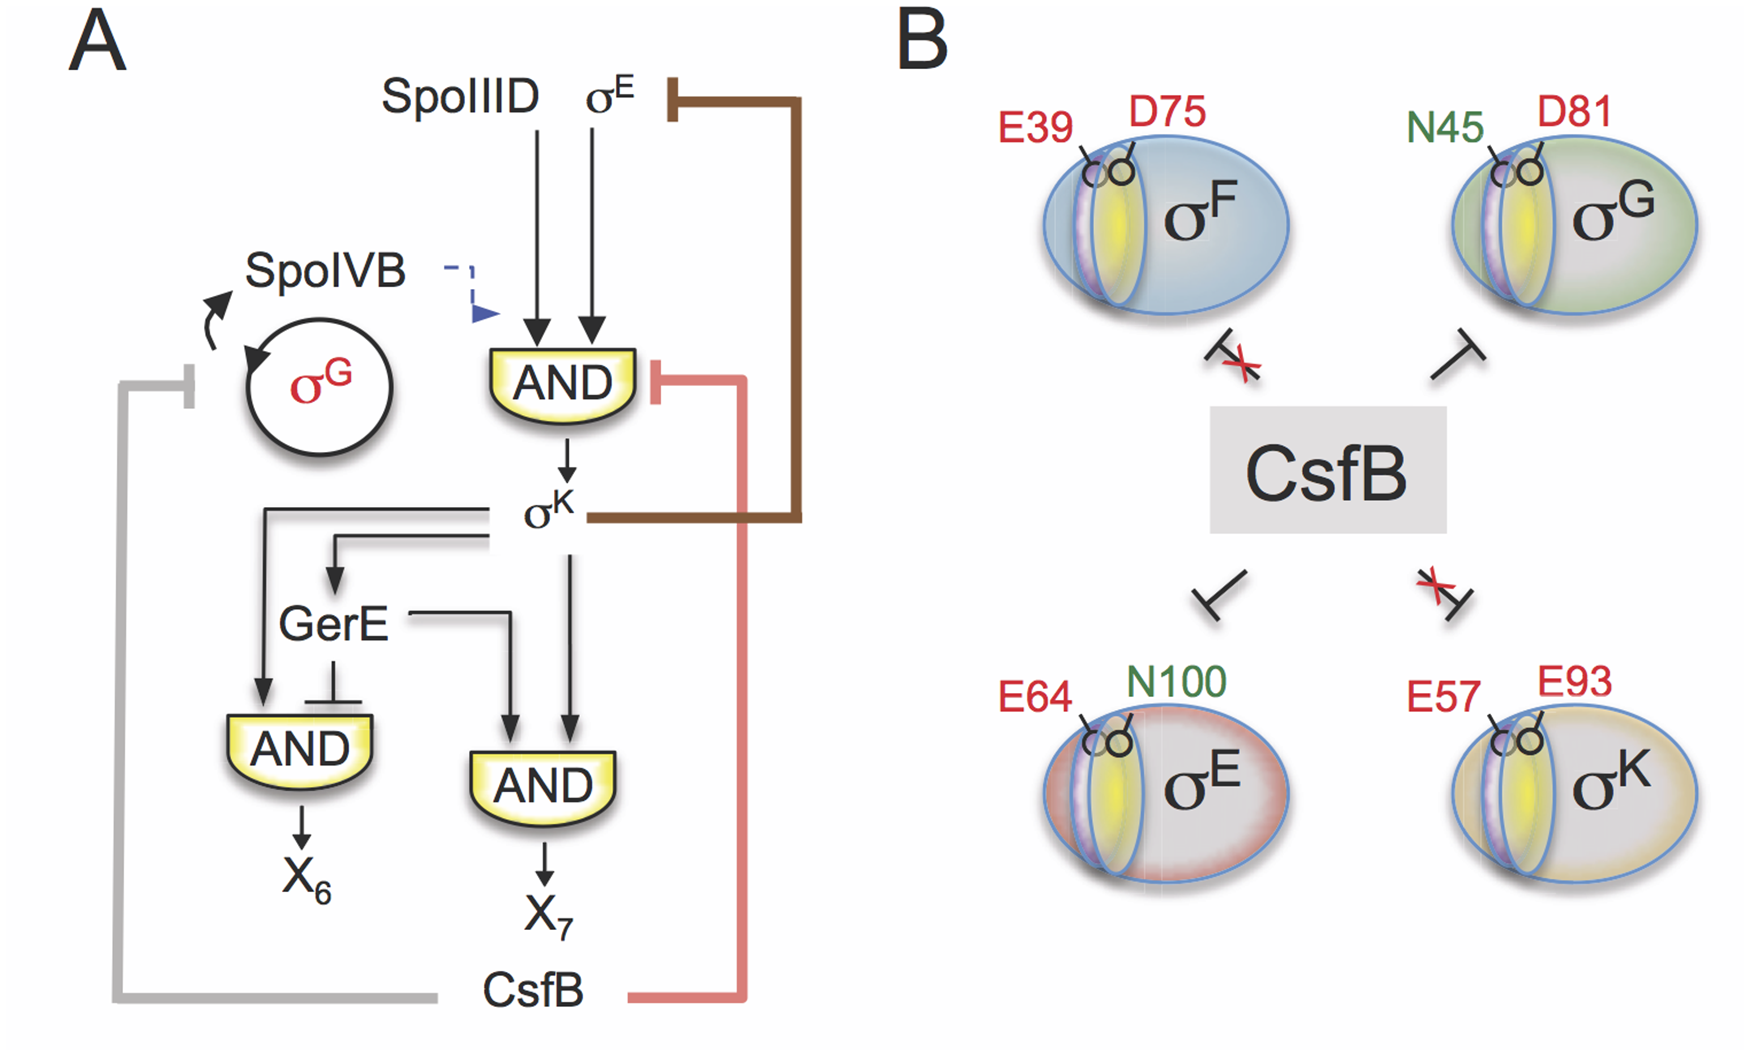 Model for the functions of CsfB.